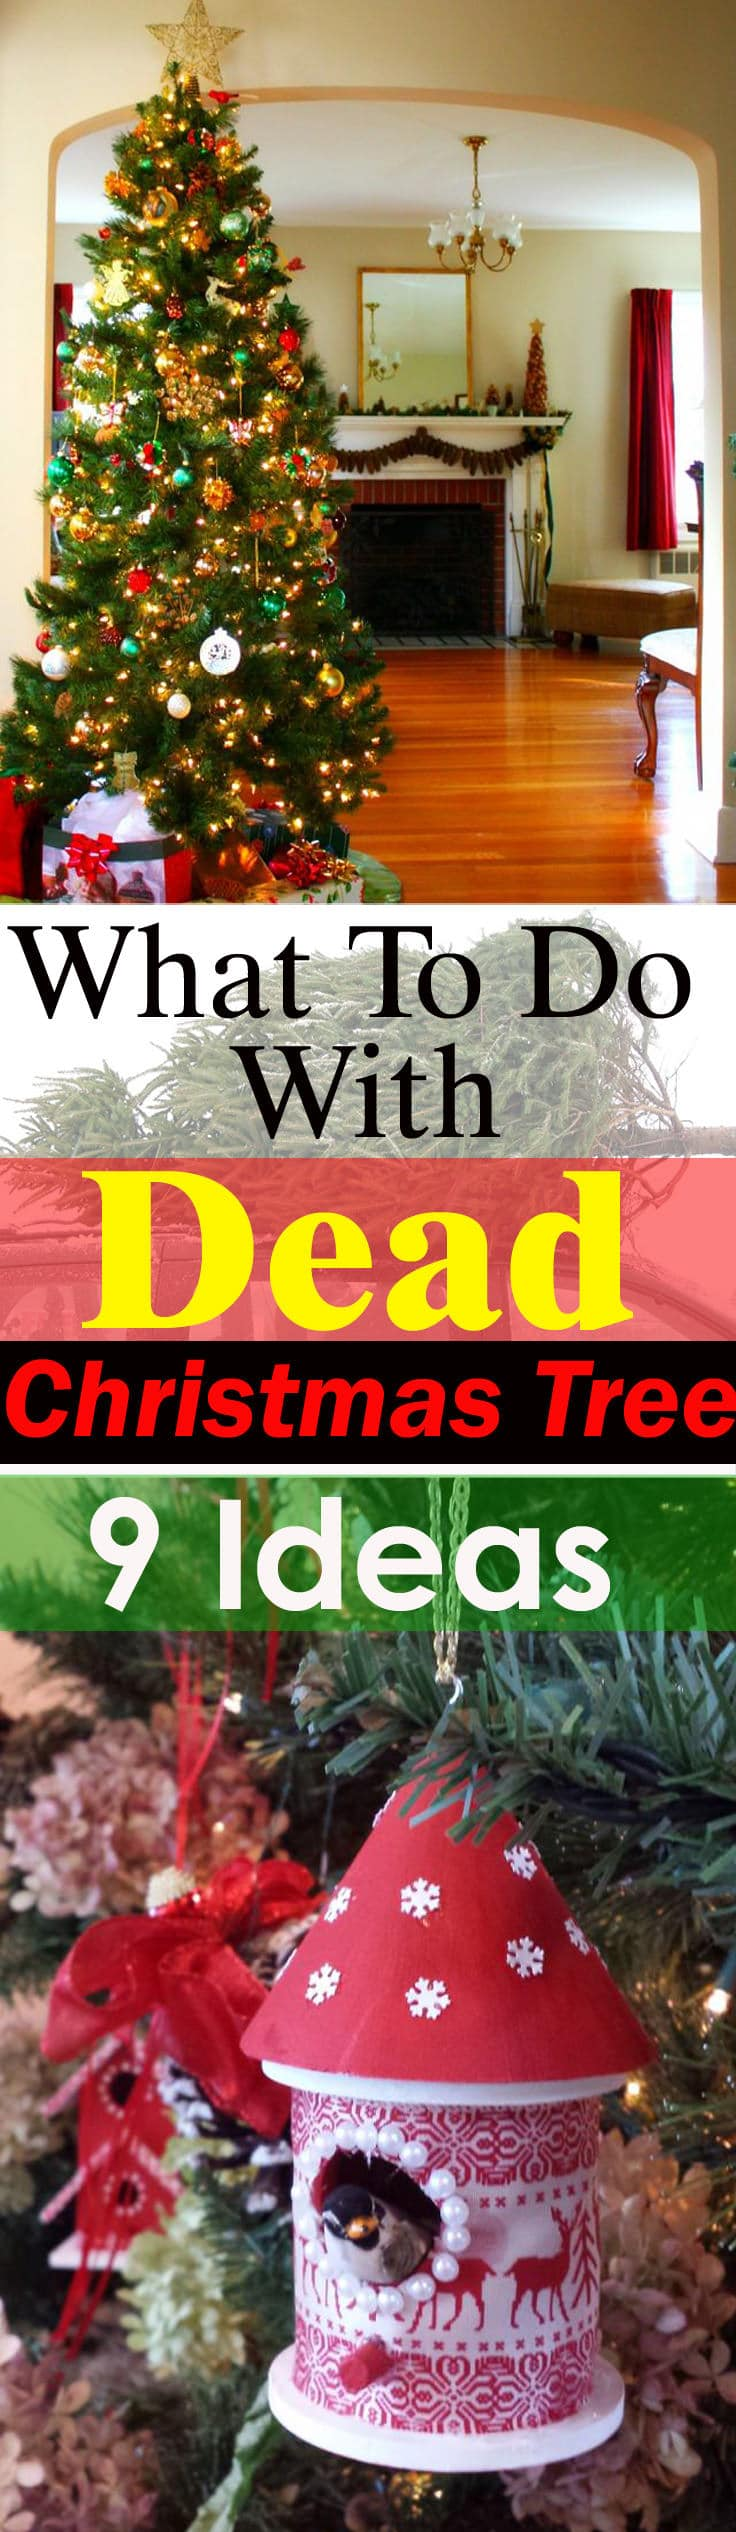 What To Do With Dead Christmas Tree 9 Ideas Balcony